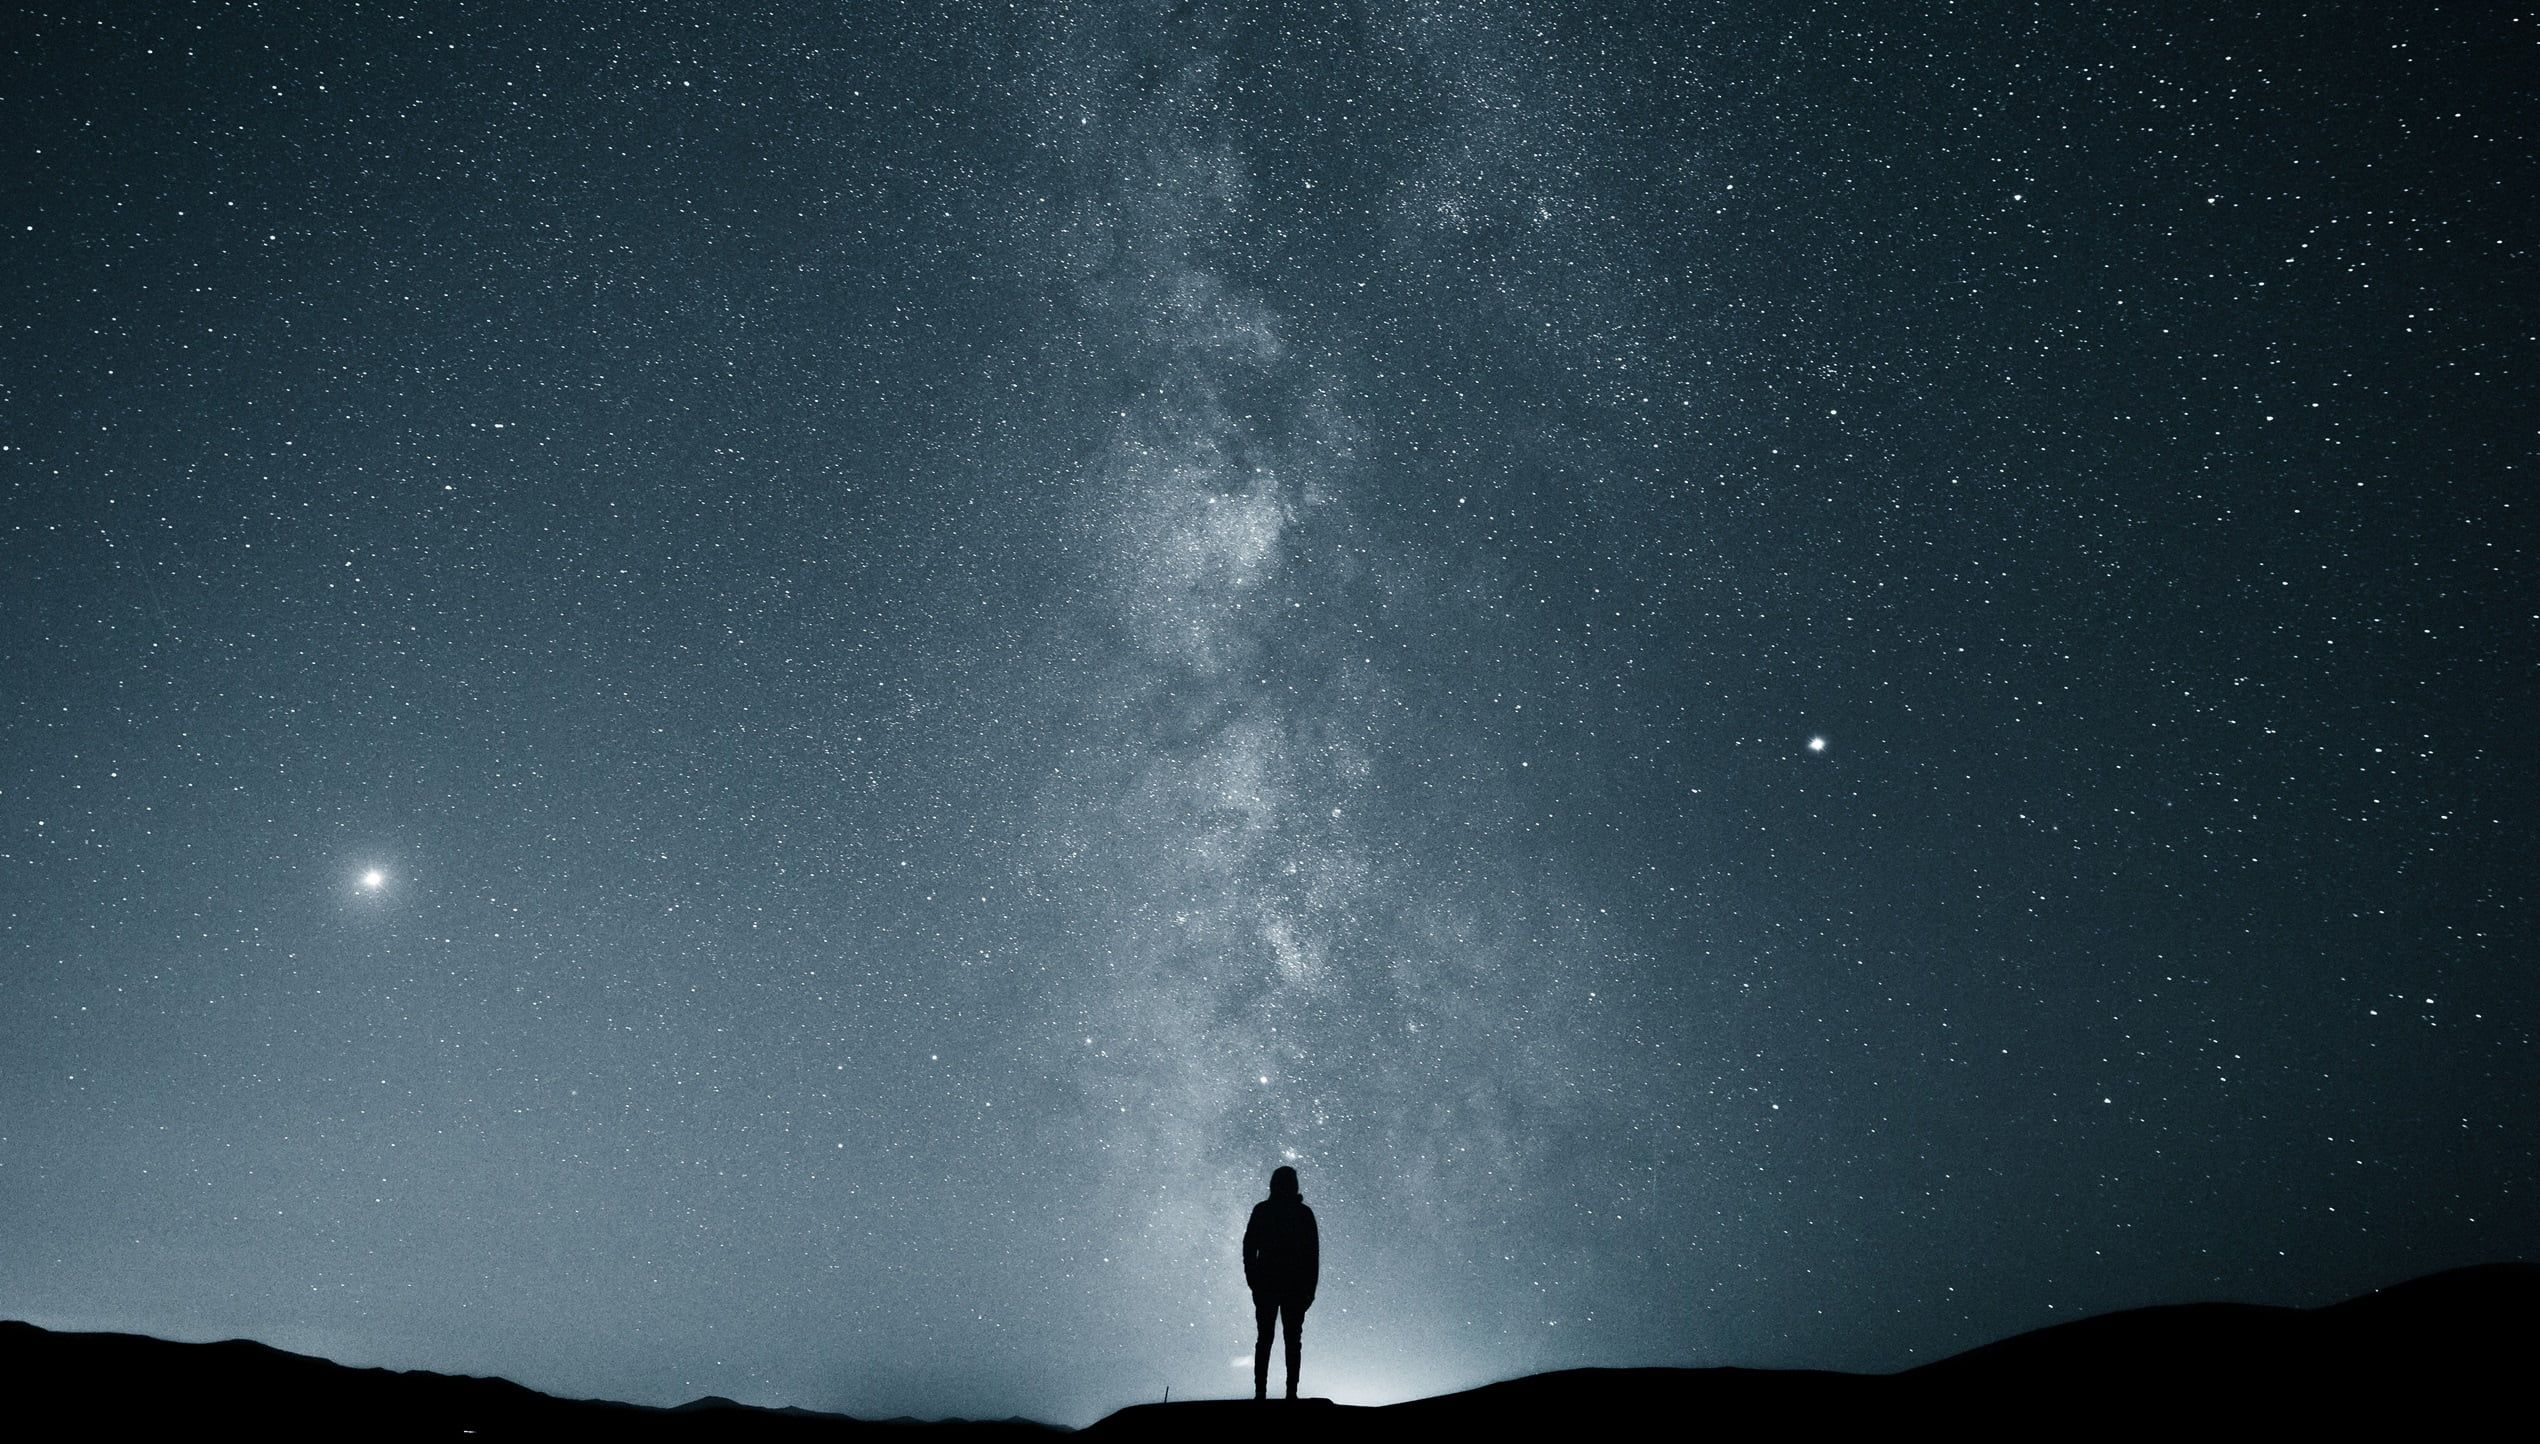 Man Silhouette Stars Sky Milky Way Alone Landscape Night Night Sky Space Black Silhouette 1080p W Milky Way Photography Astrophotography Sky Pictures Hd wallpaper alone man silhouette rock